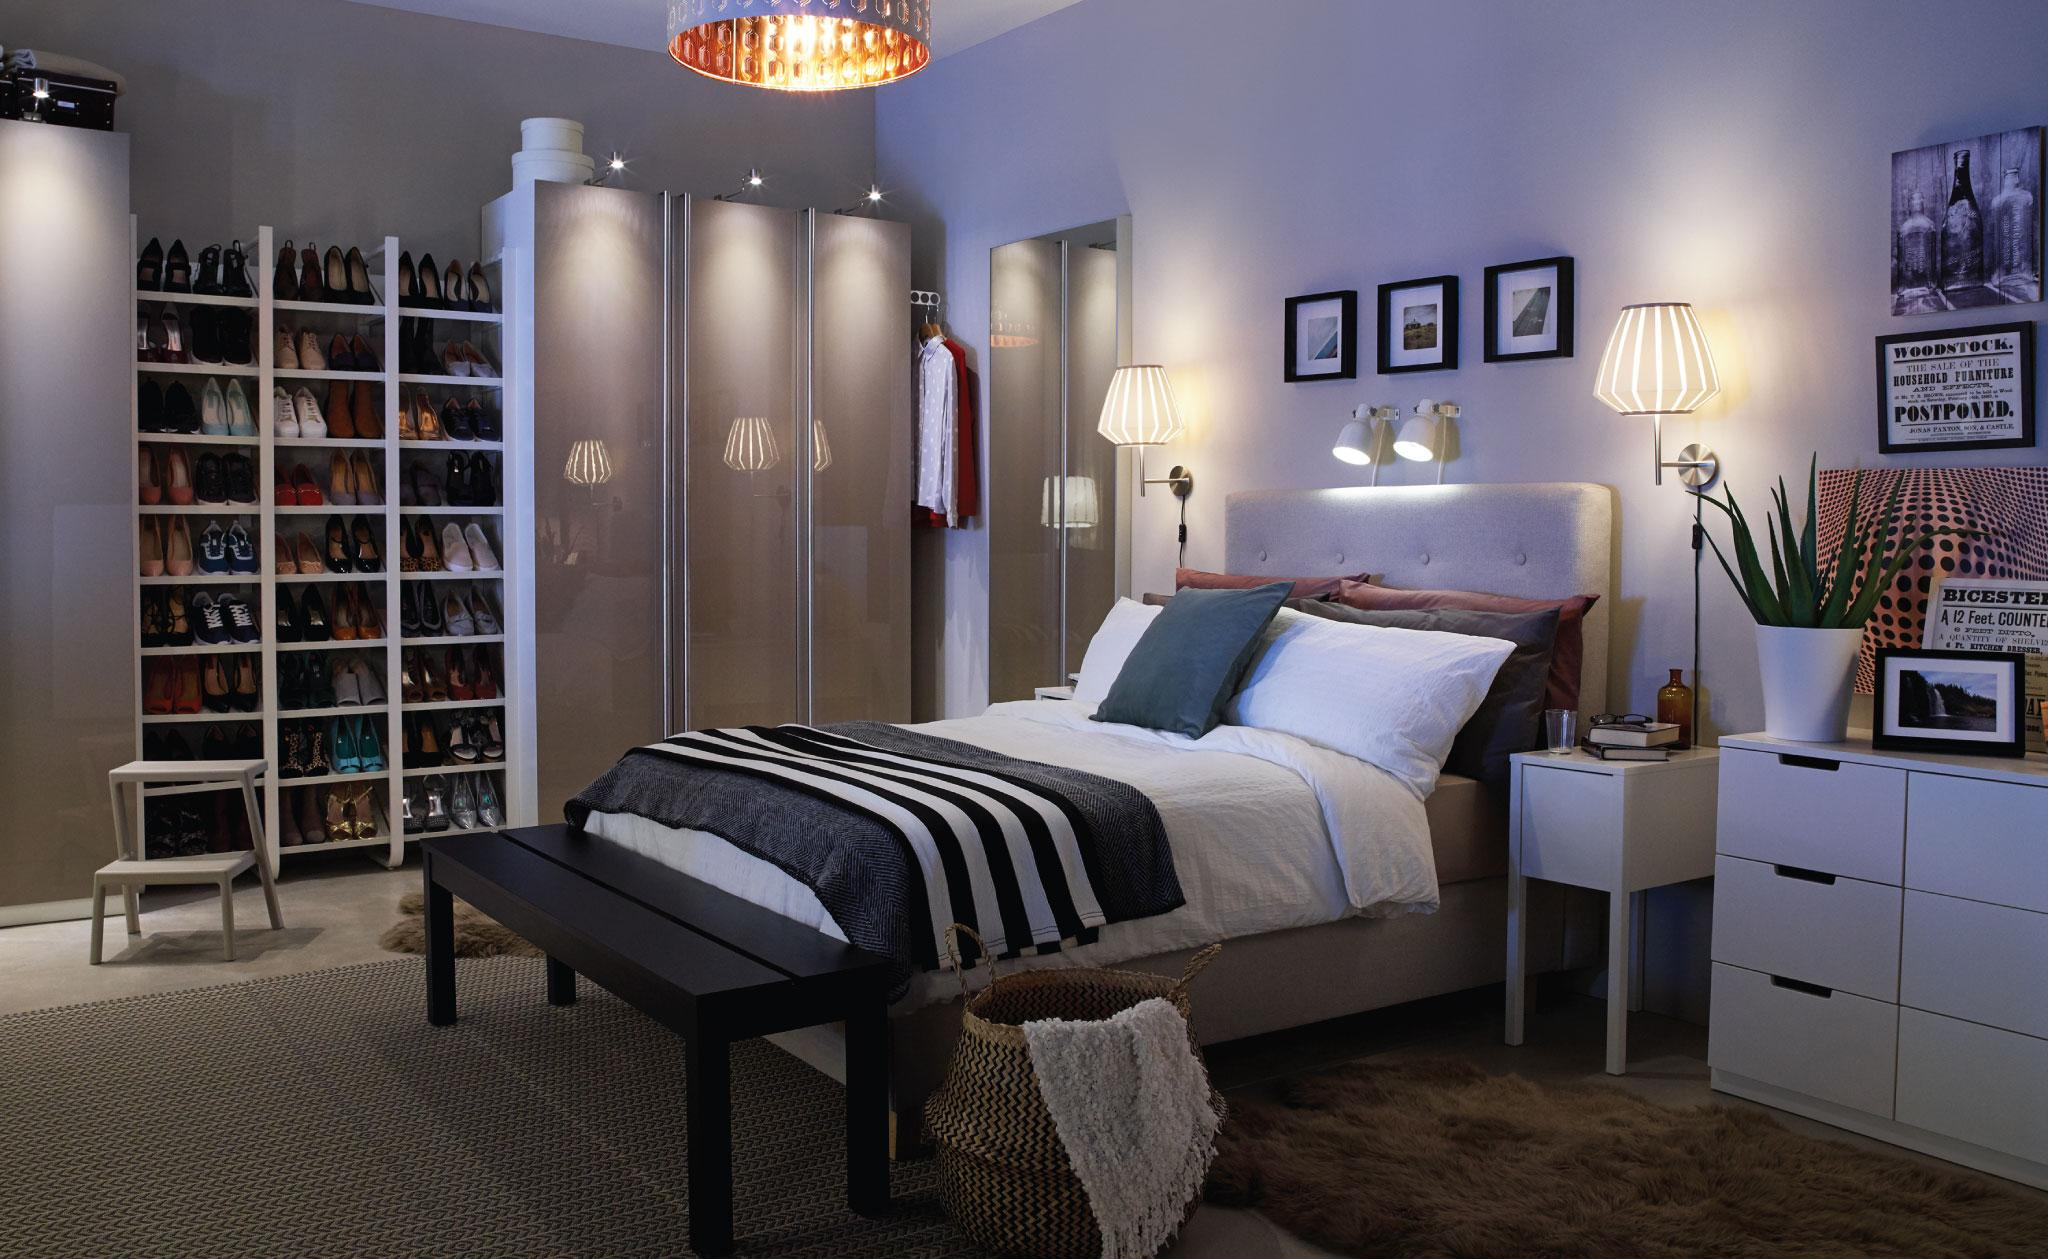 5 Ikea Bedroom Lighting Ideas Perfect For A Cosy Revamp In An Instant Real Homes